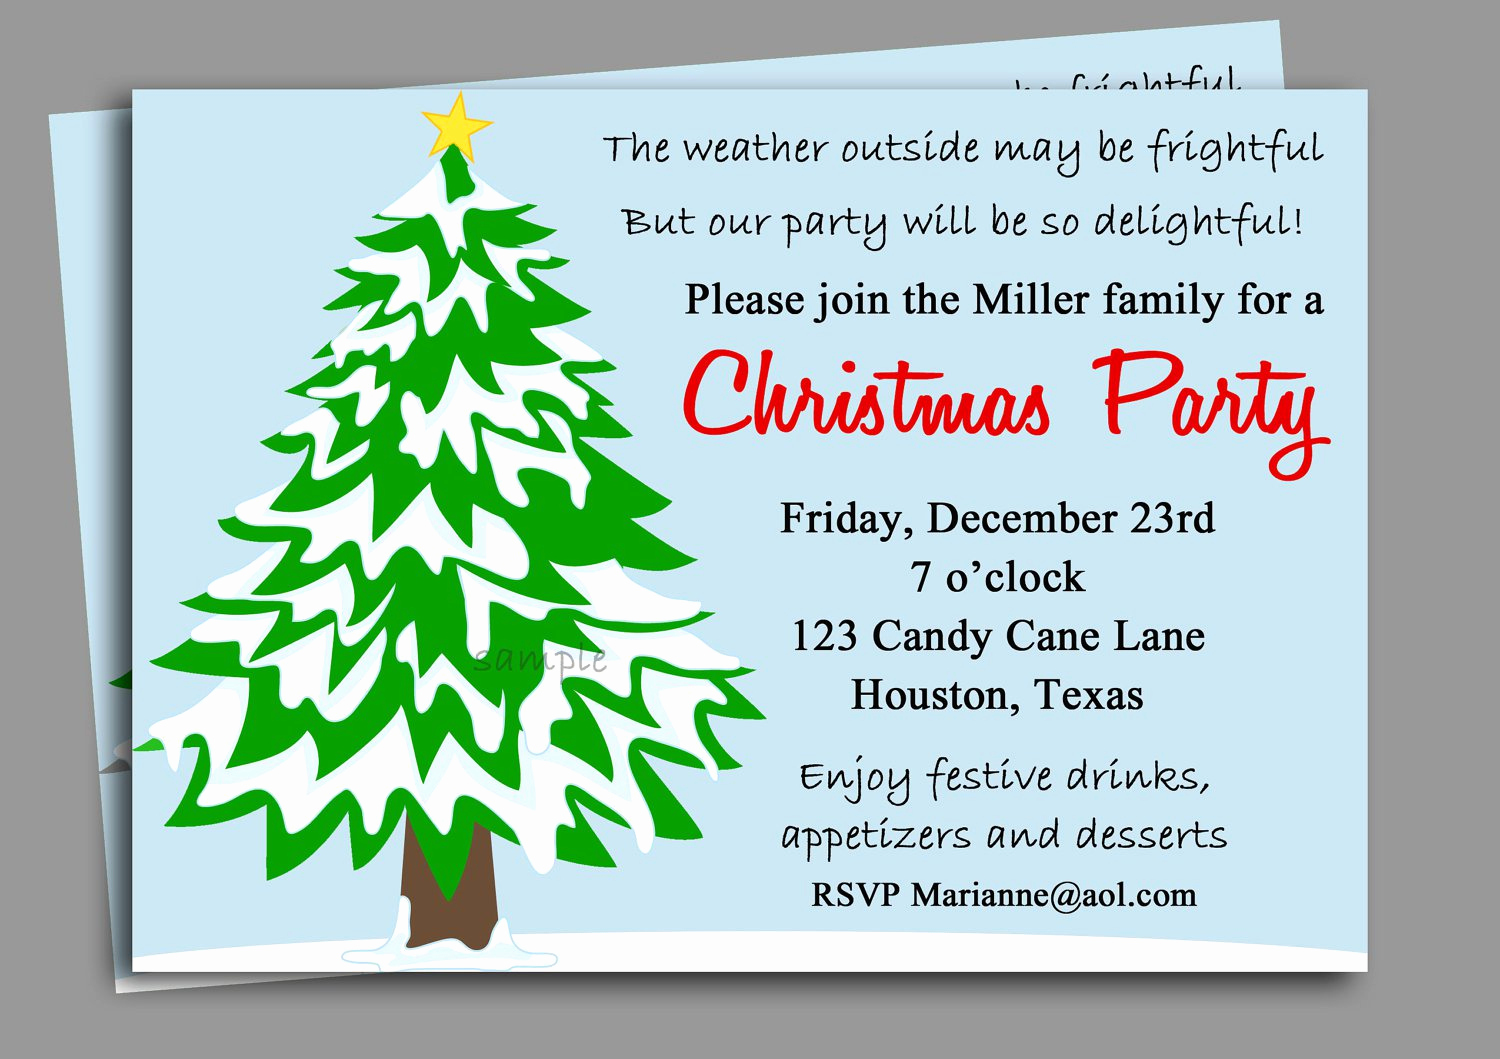 Funny Christmas Party Invitation Wording Inspirational Funny Dinner Party Invitation Wording